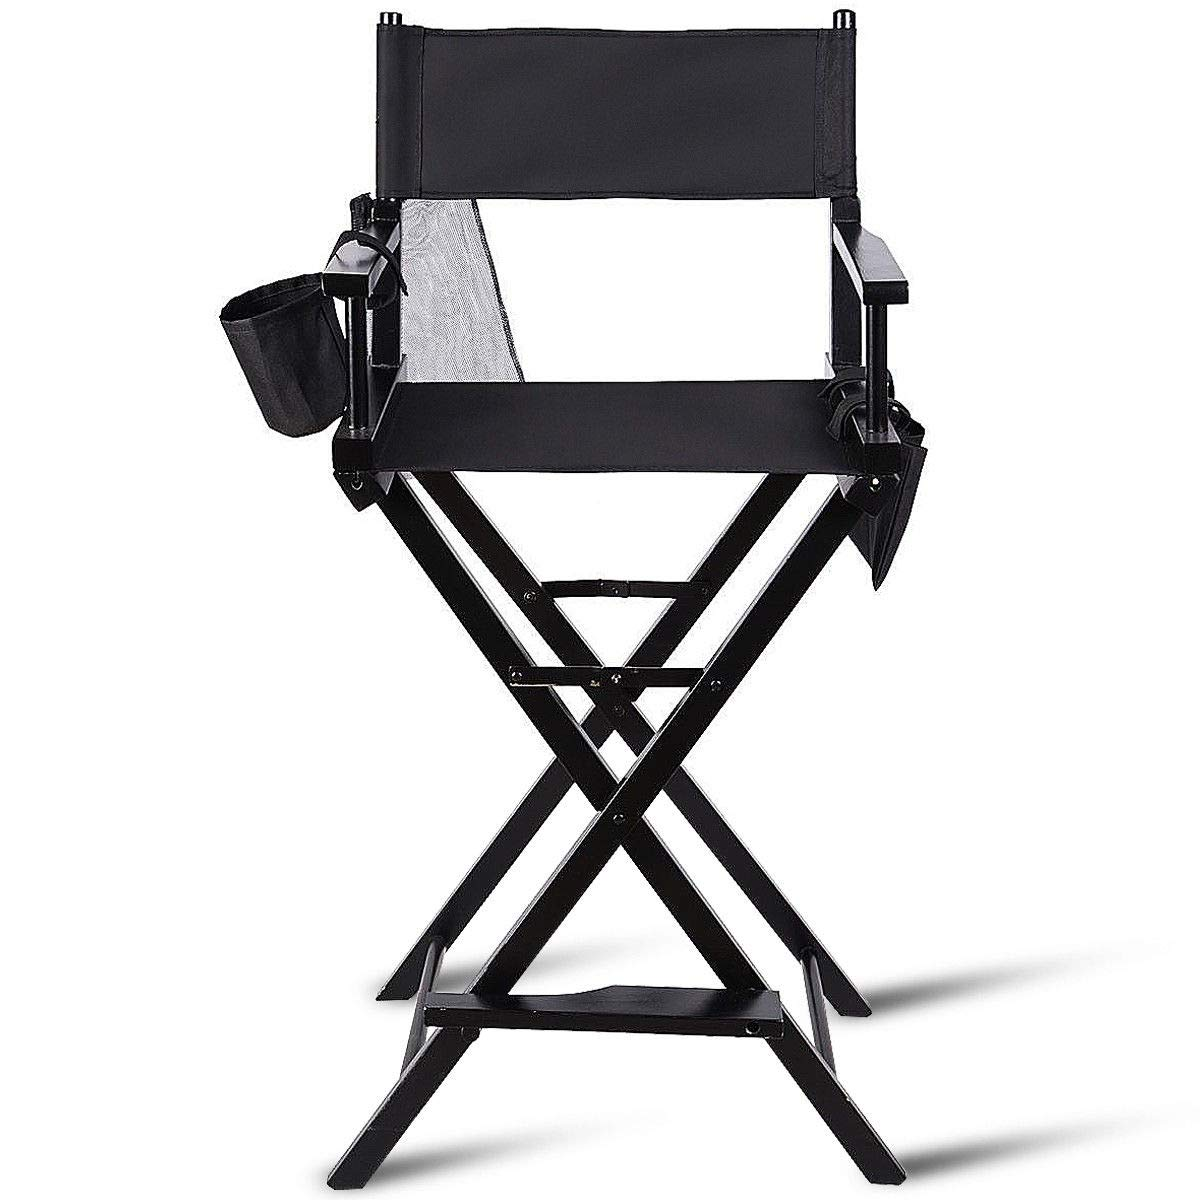 "TANGKULA Directors Chair 30"" Height Lightweight Foldable Portable Black Wood Frame with Storage Bag Footrest Home Commercial Makeup Artist Chair (Black)"